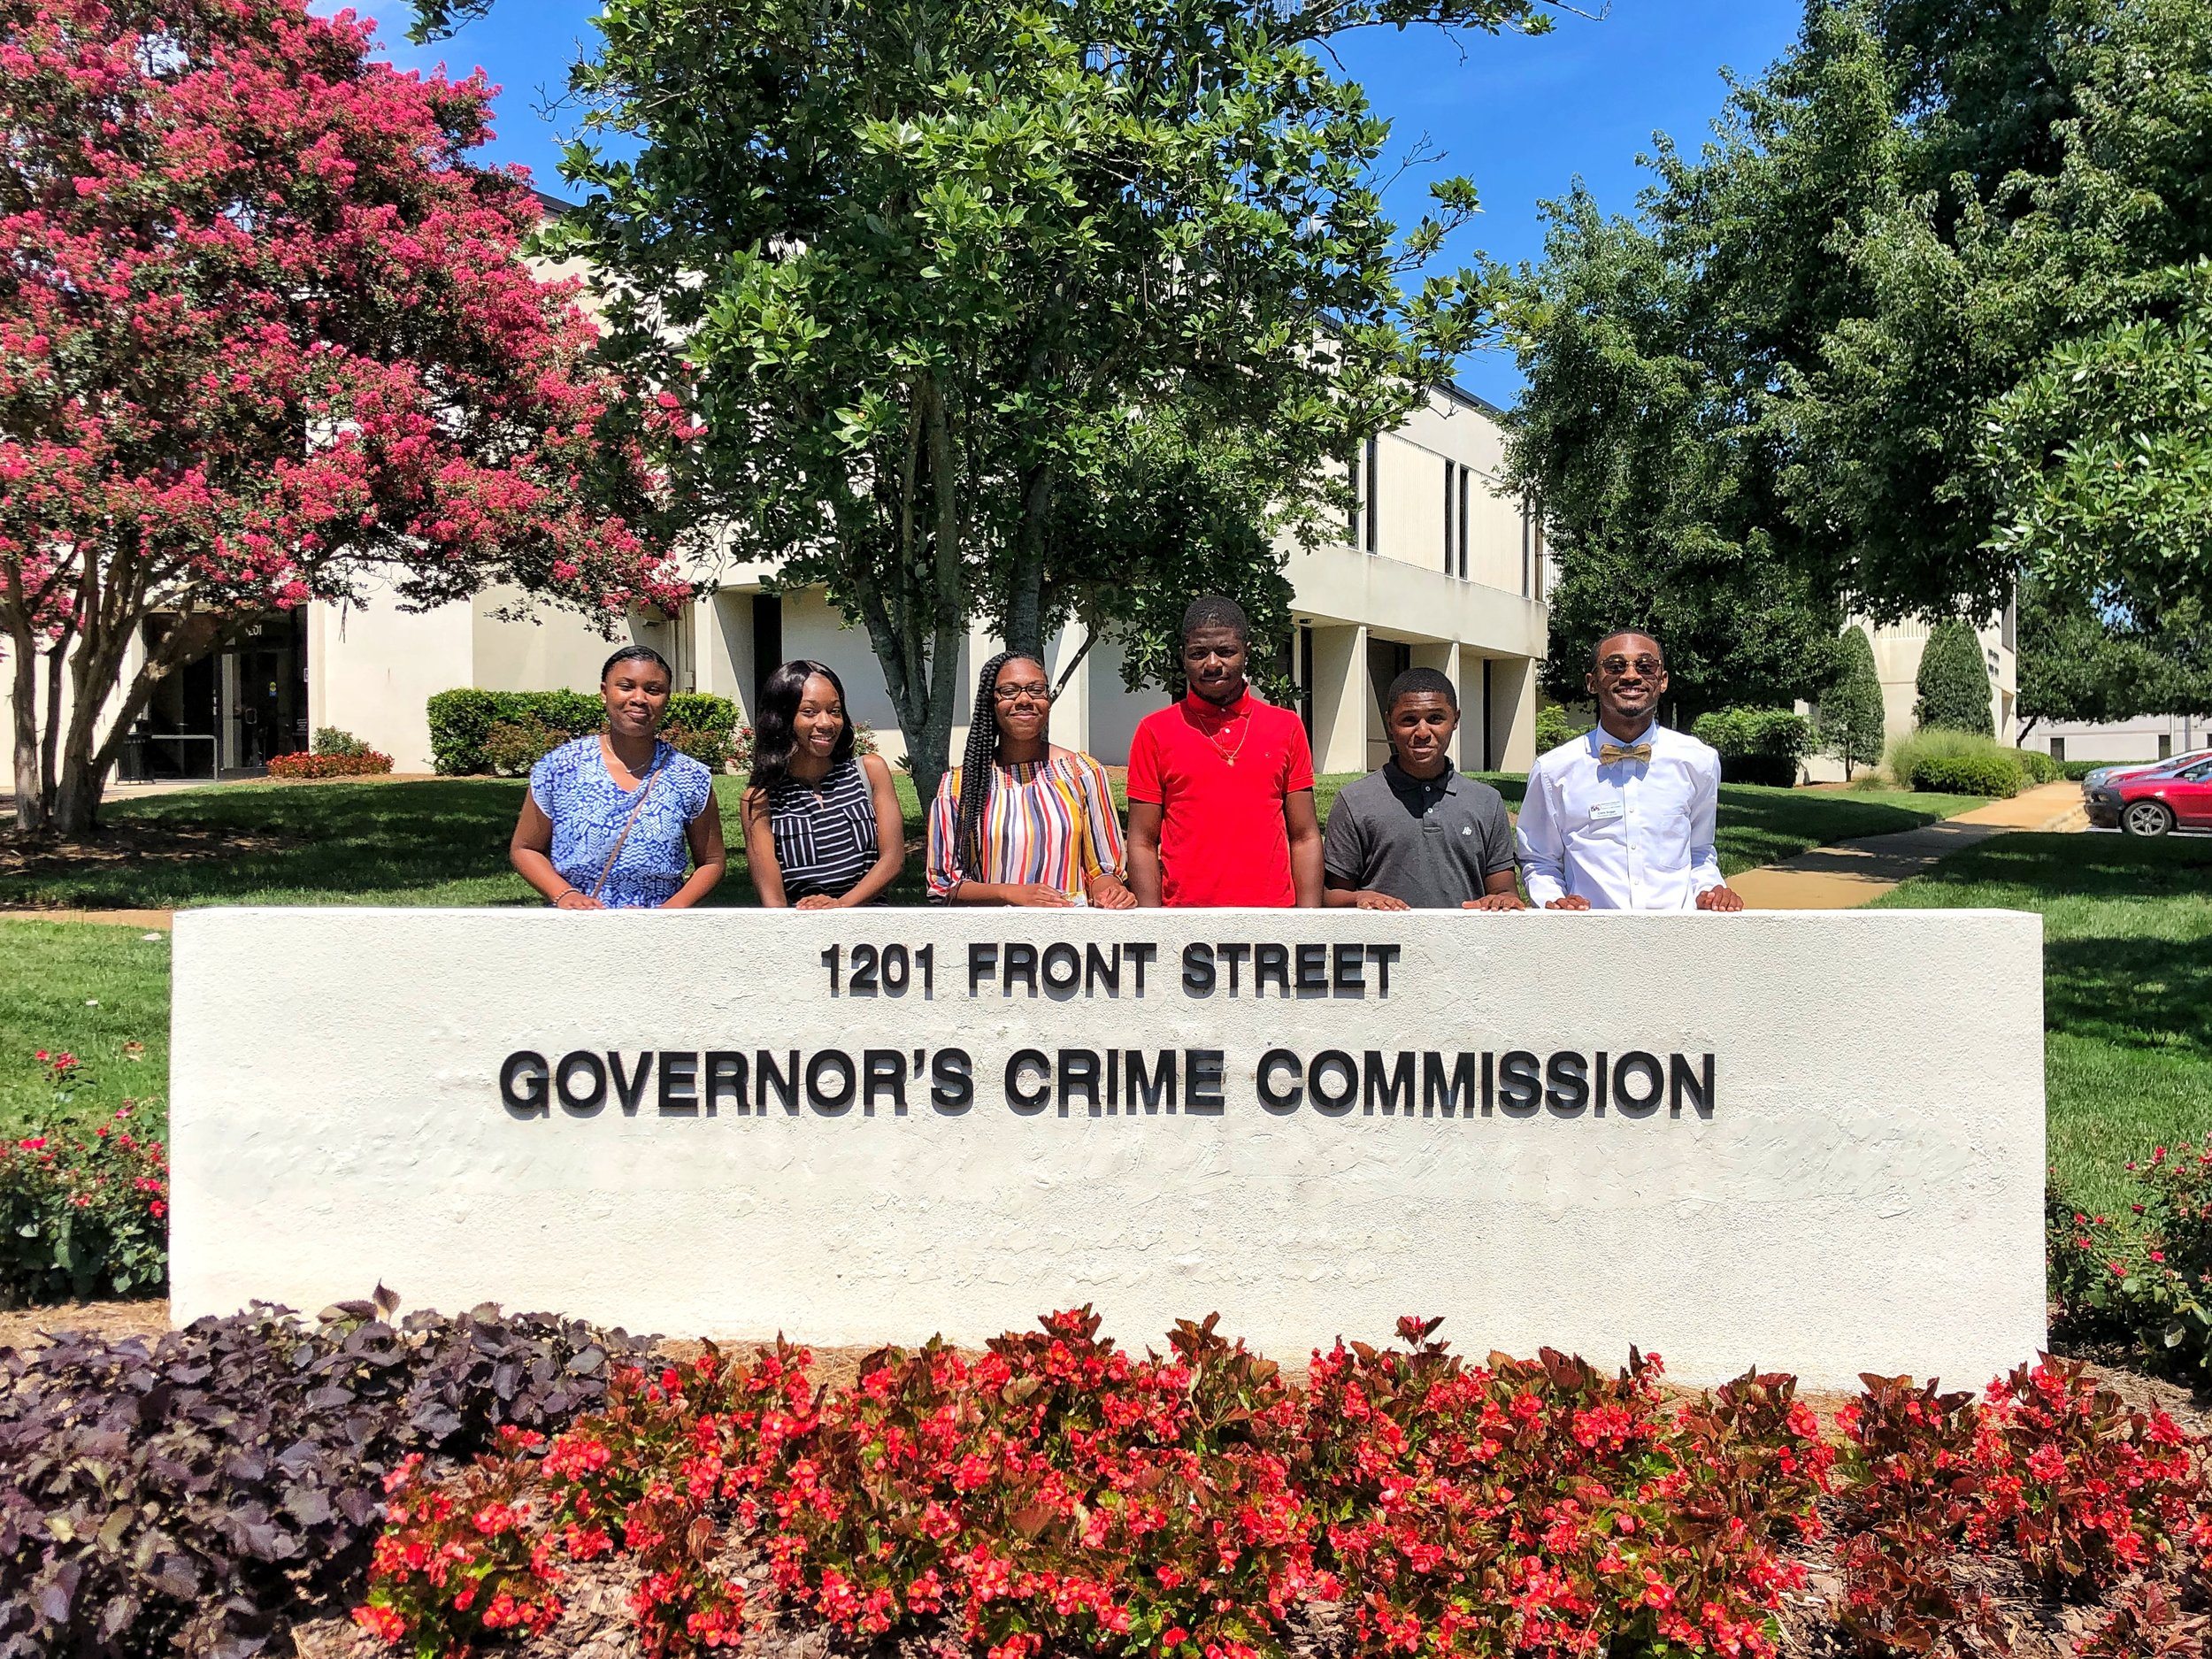 Kinston Teens summer intern team attending the Governor's Crime Commission Special Committee on School Shootings meeting on Thursday, July 19 in Raleigh, North Carolina  (Photo by Kinston Teens)